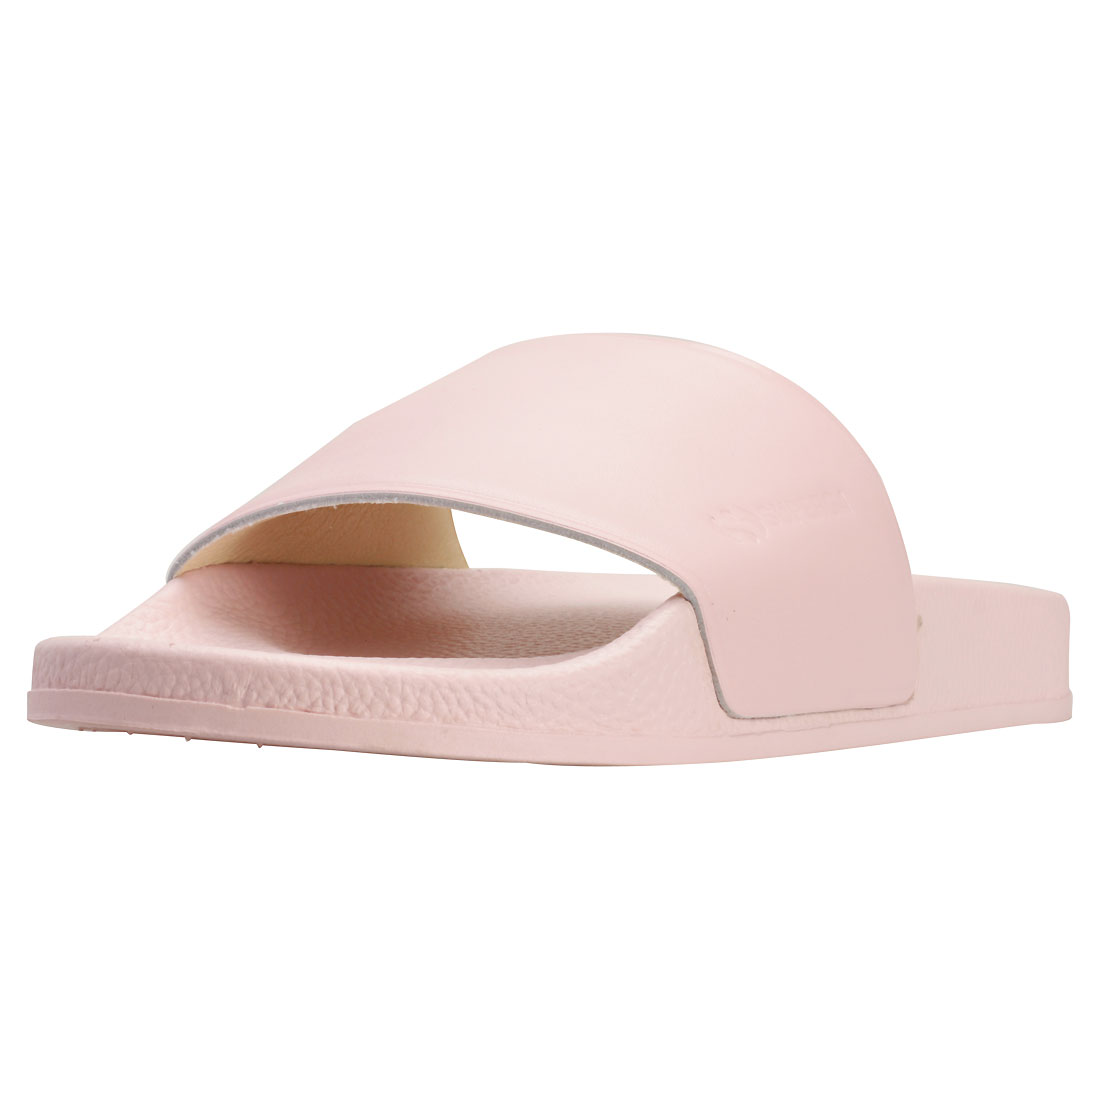 SUPERGA 1914 FGLU linea Donna Rosa Pelle Slide 6.5 UK